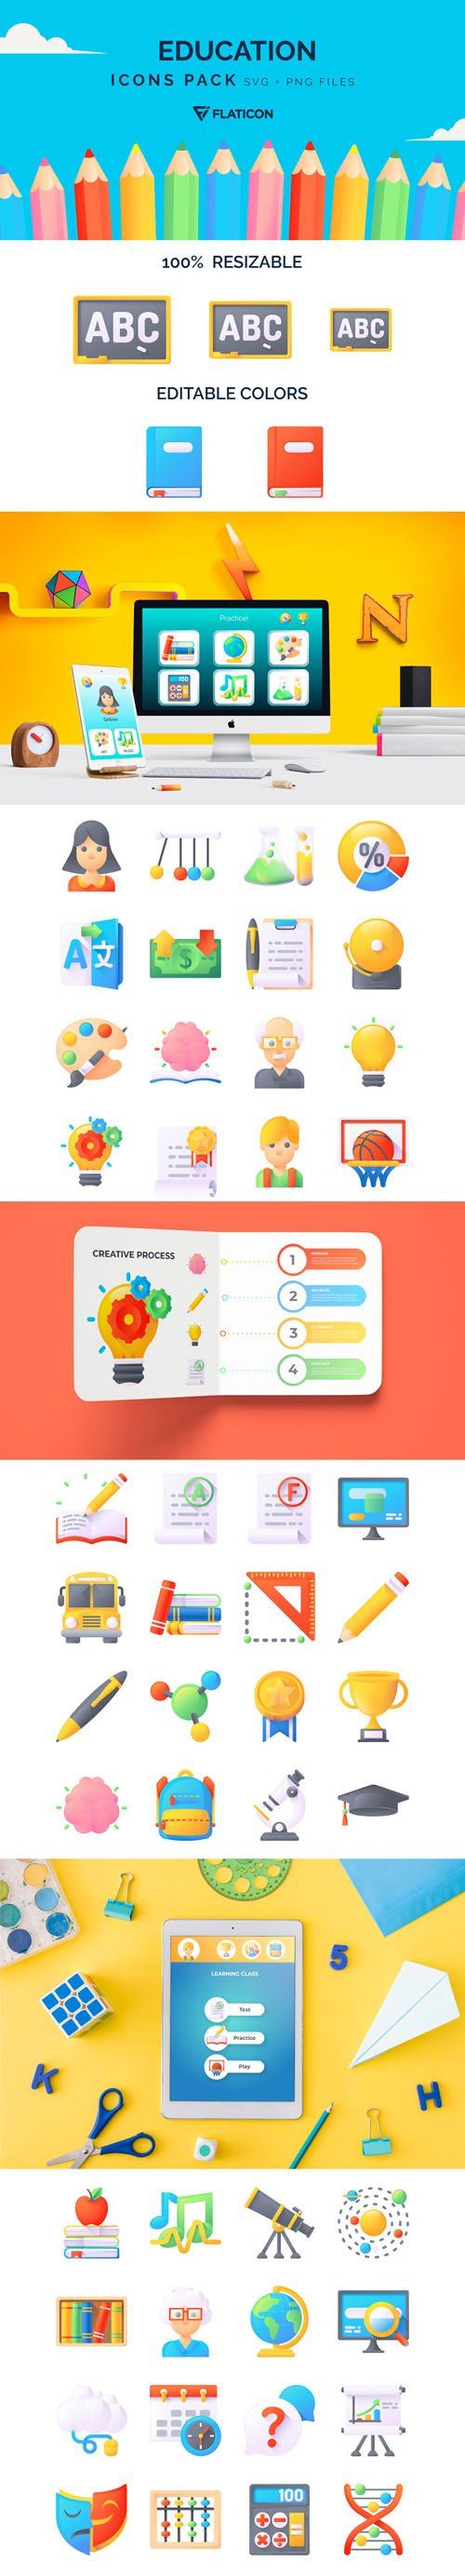 50 Education Icons Pack